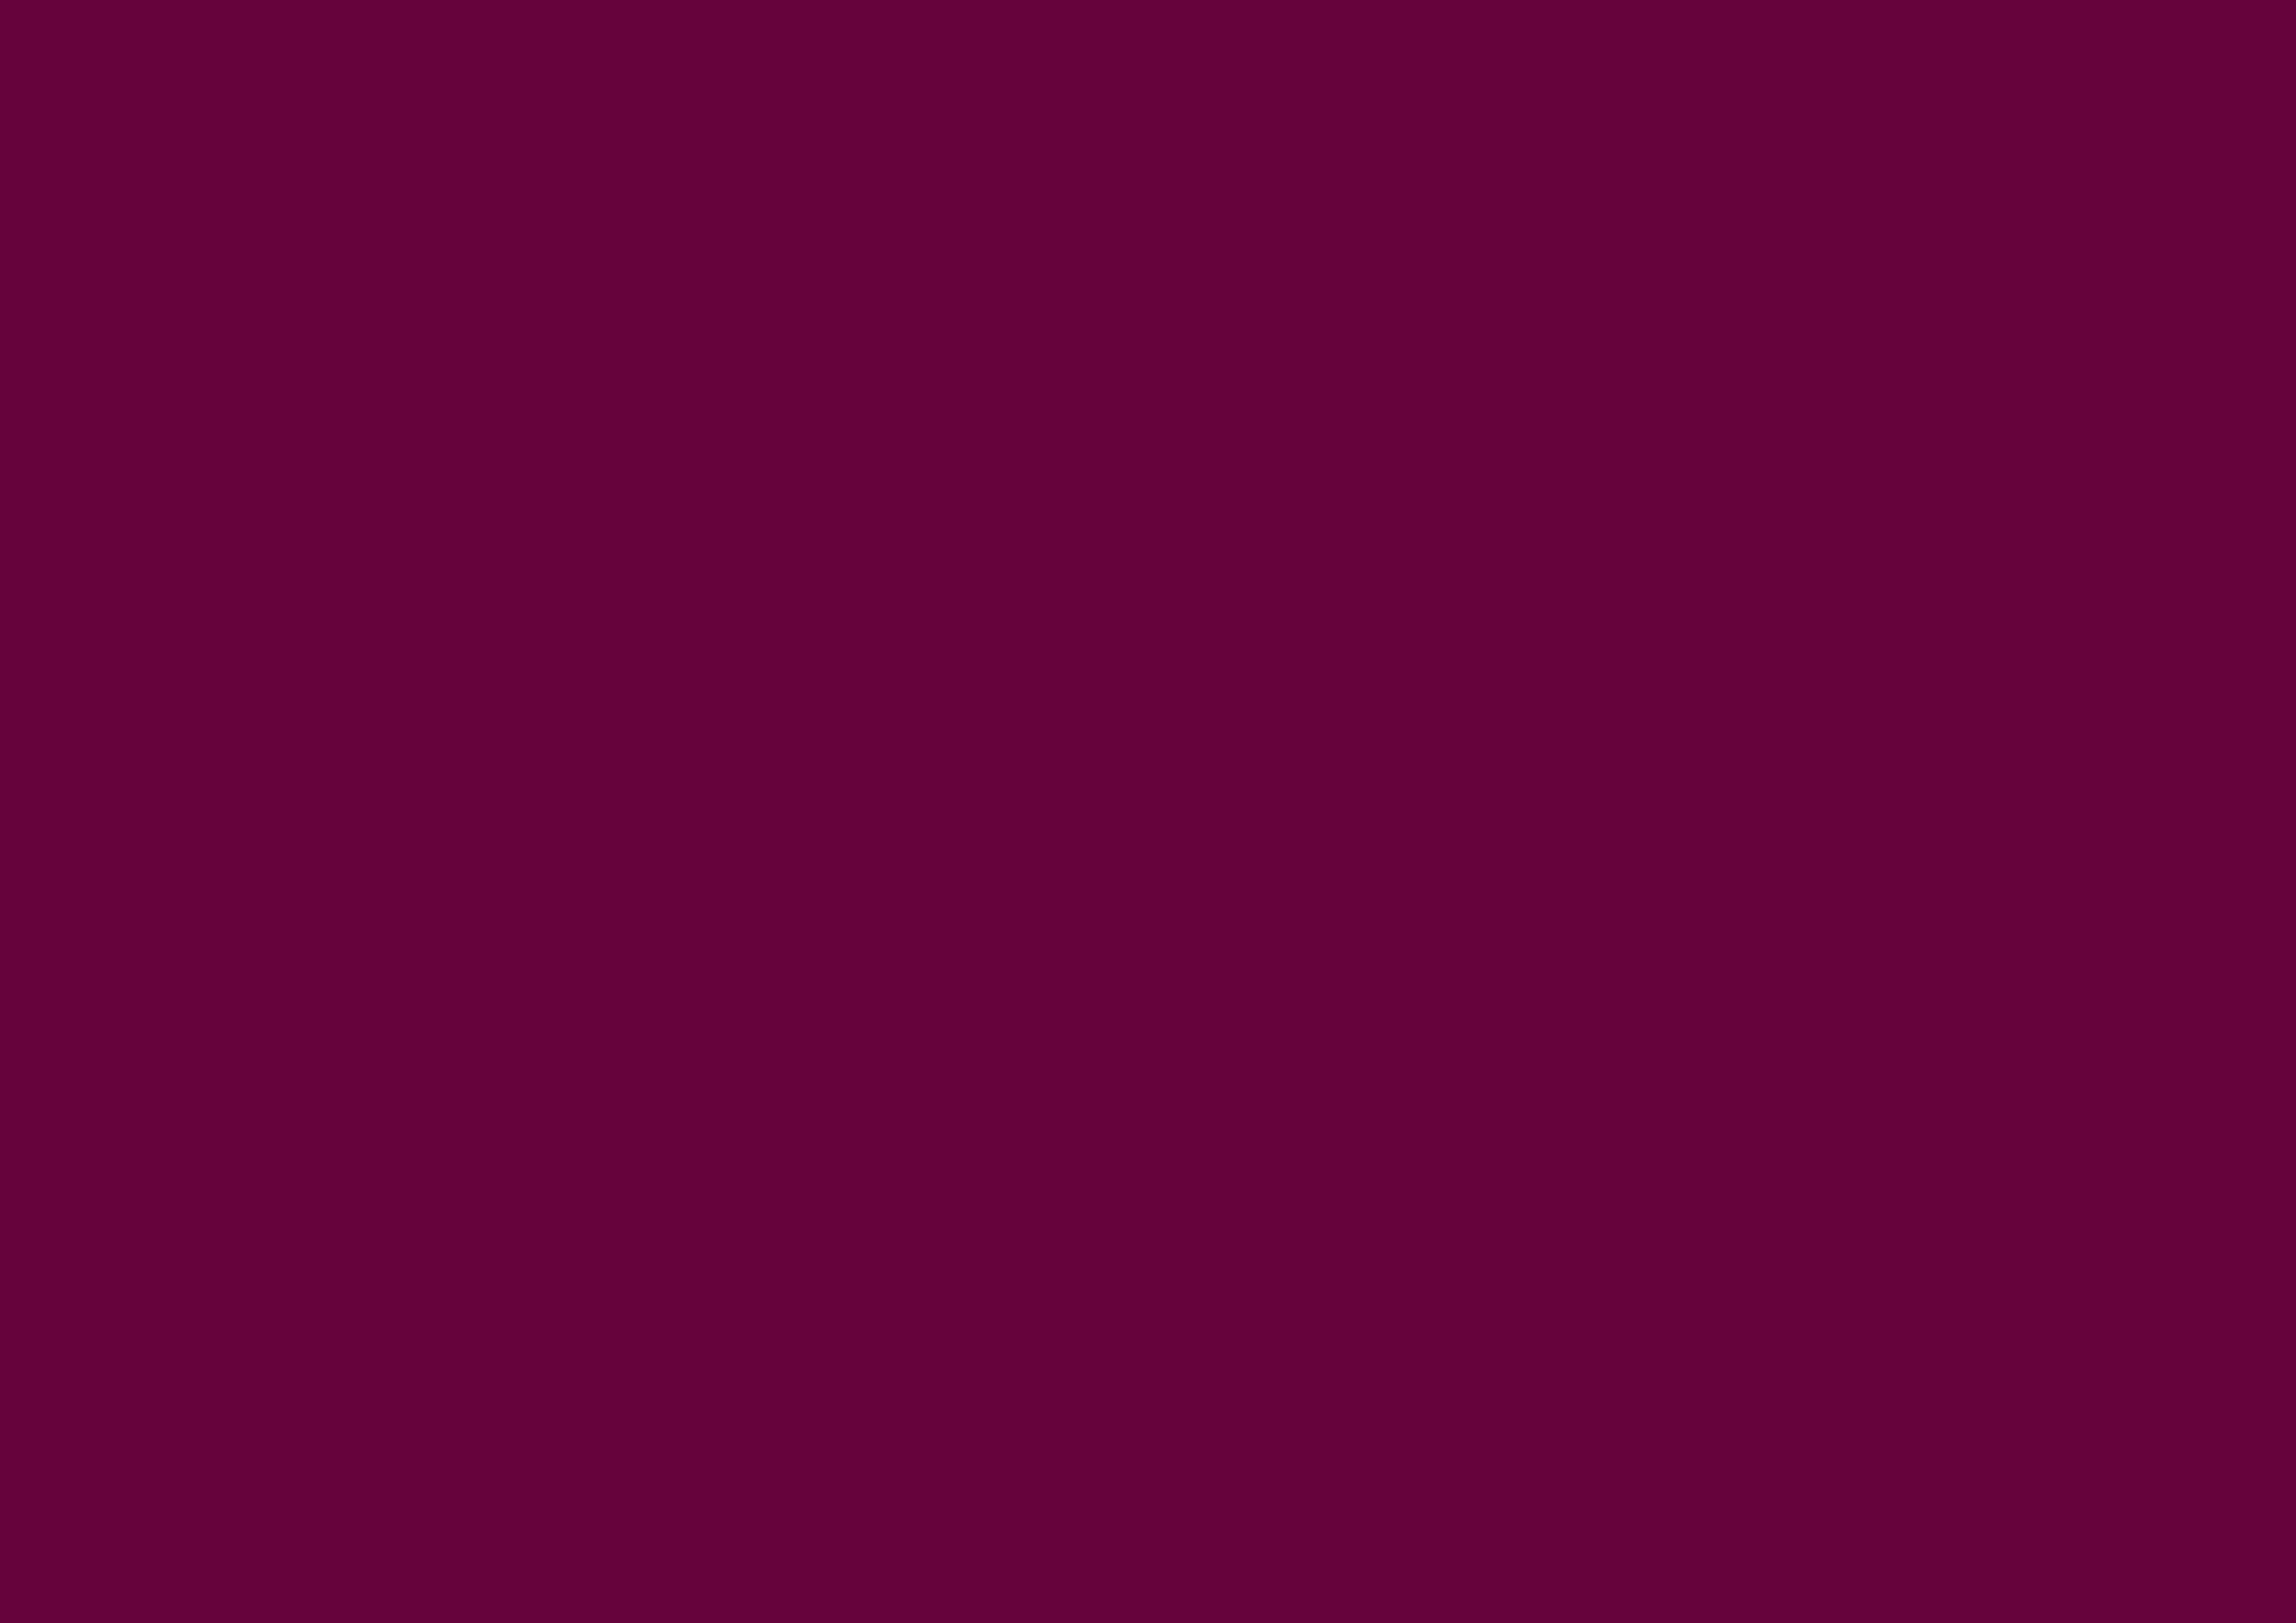 3508x2480 Imperial Purple Solid Color Background